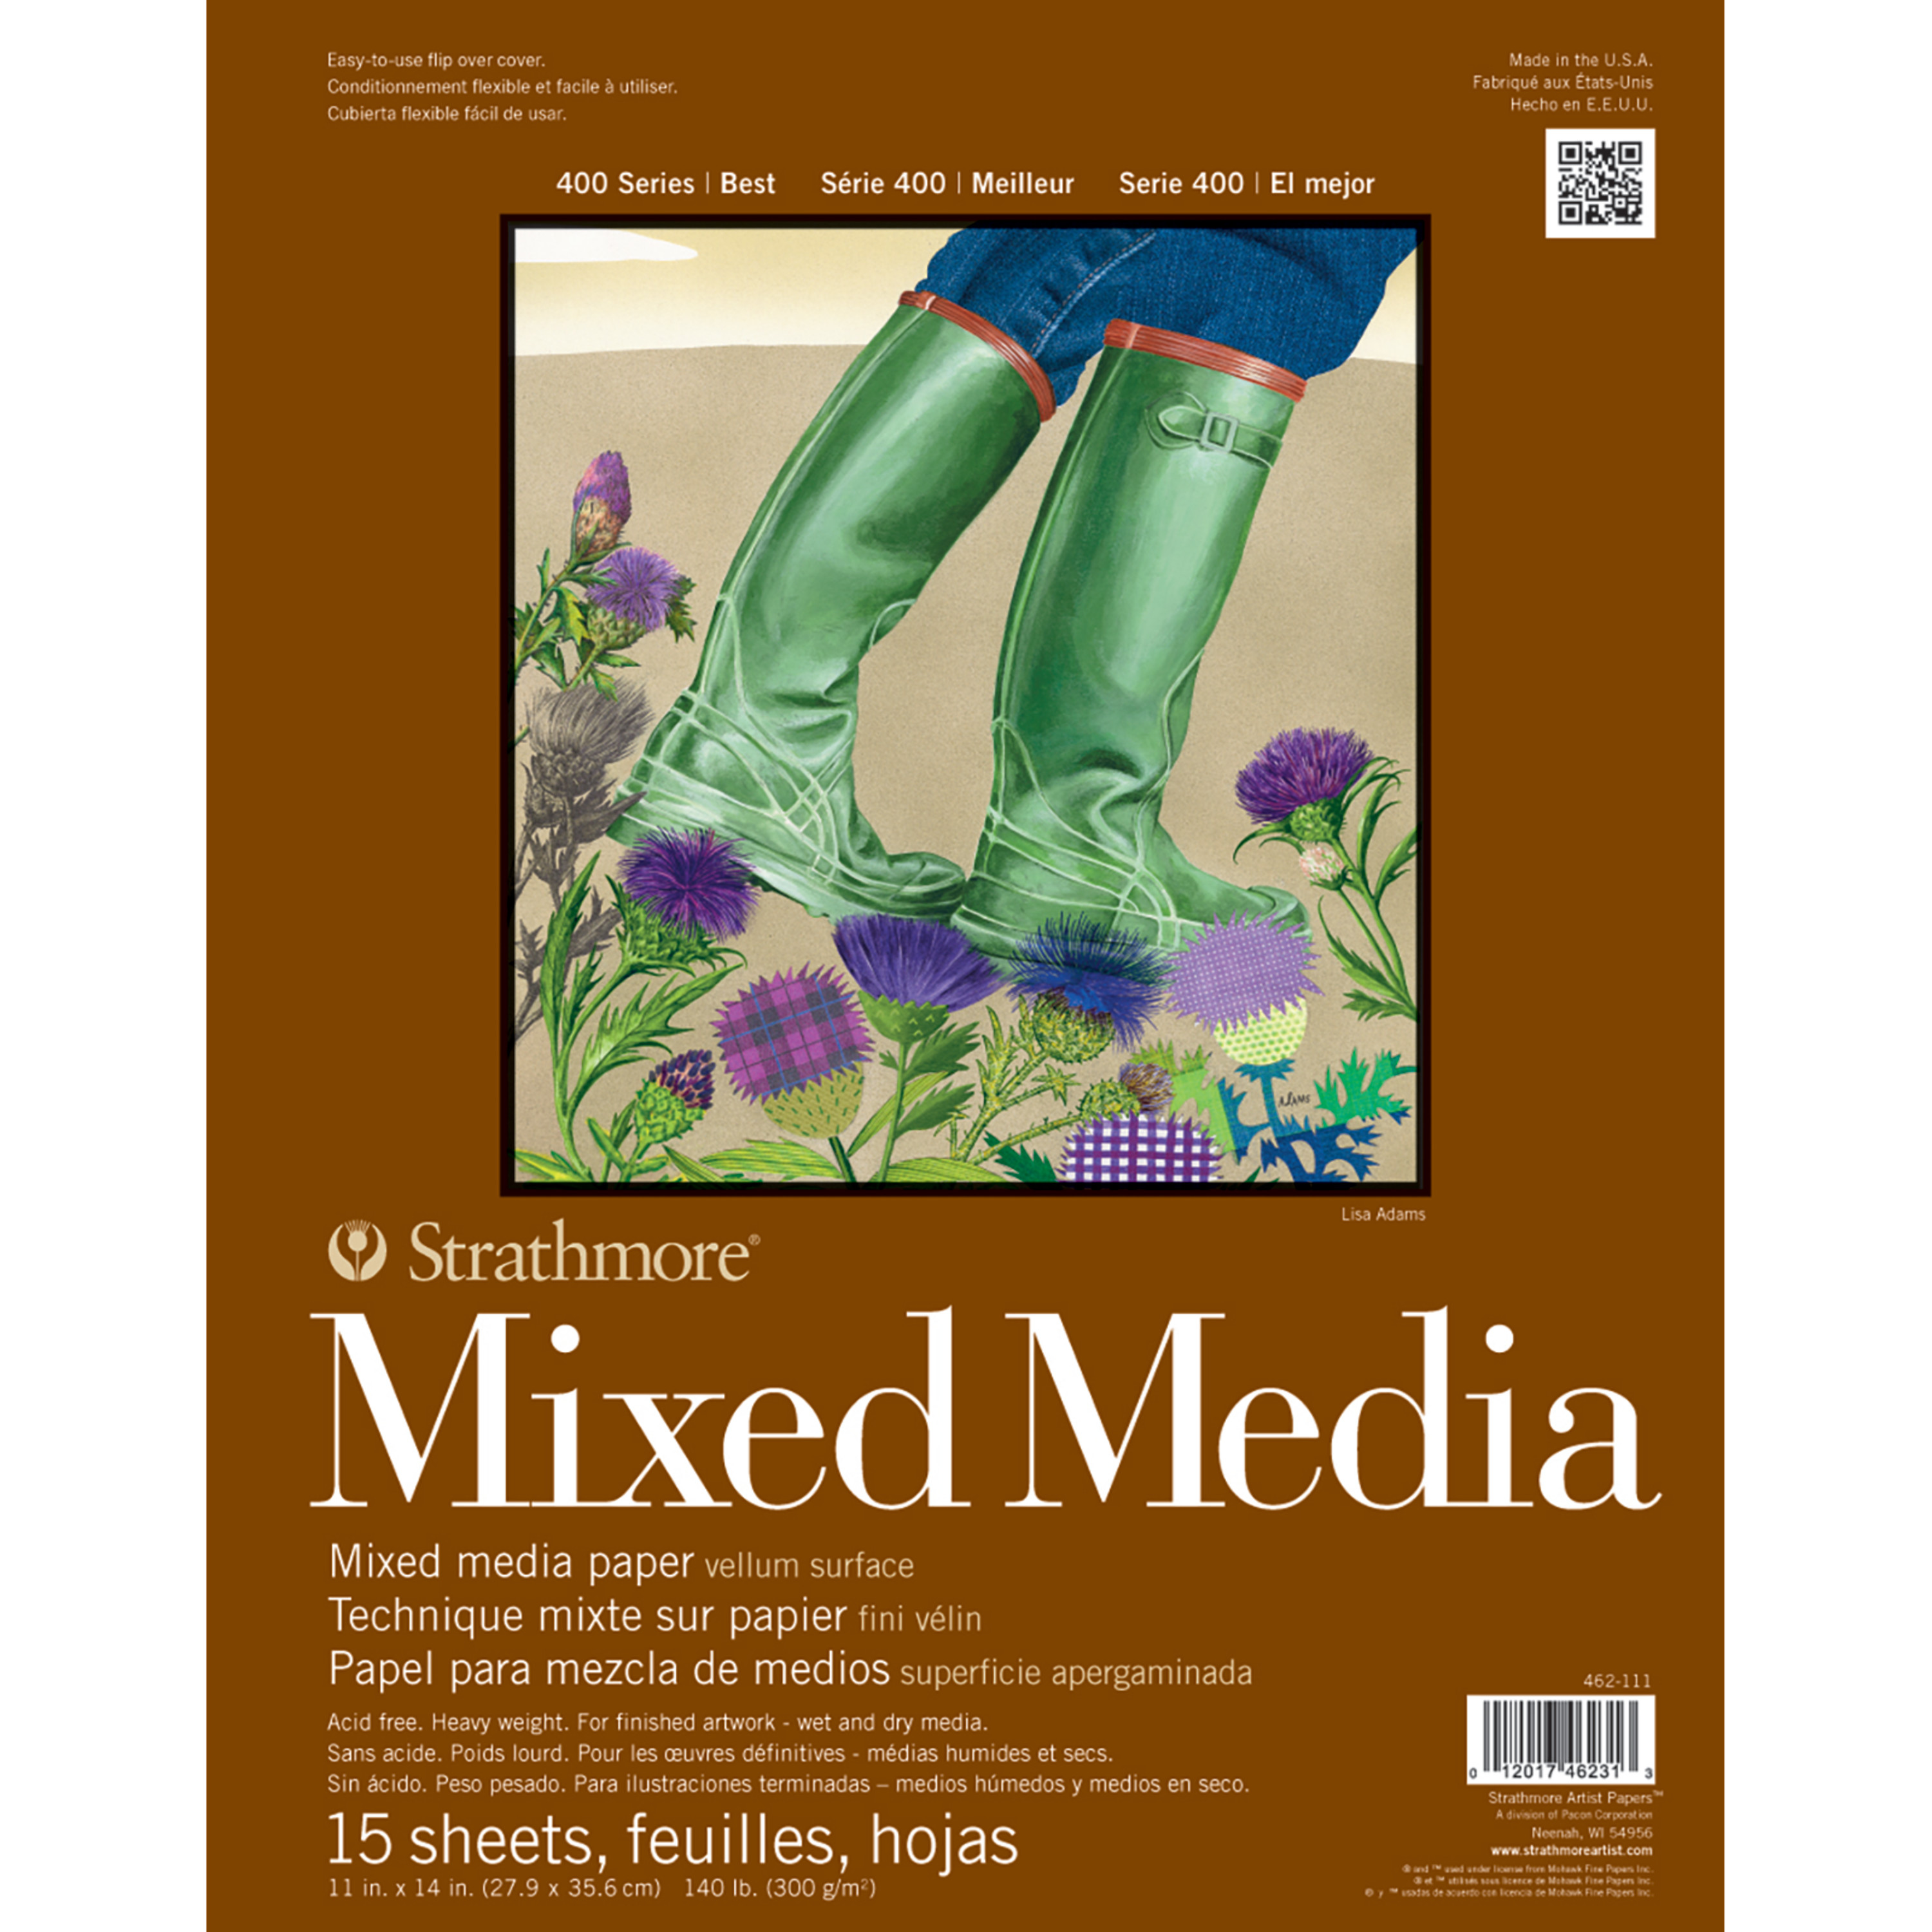 Strathmore Mixed Media Paper Pad, 400 Series, 11in x 14inin, 15 Sheets